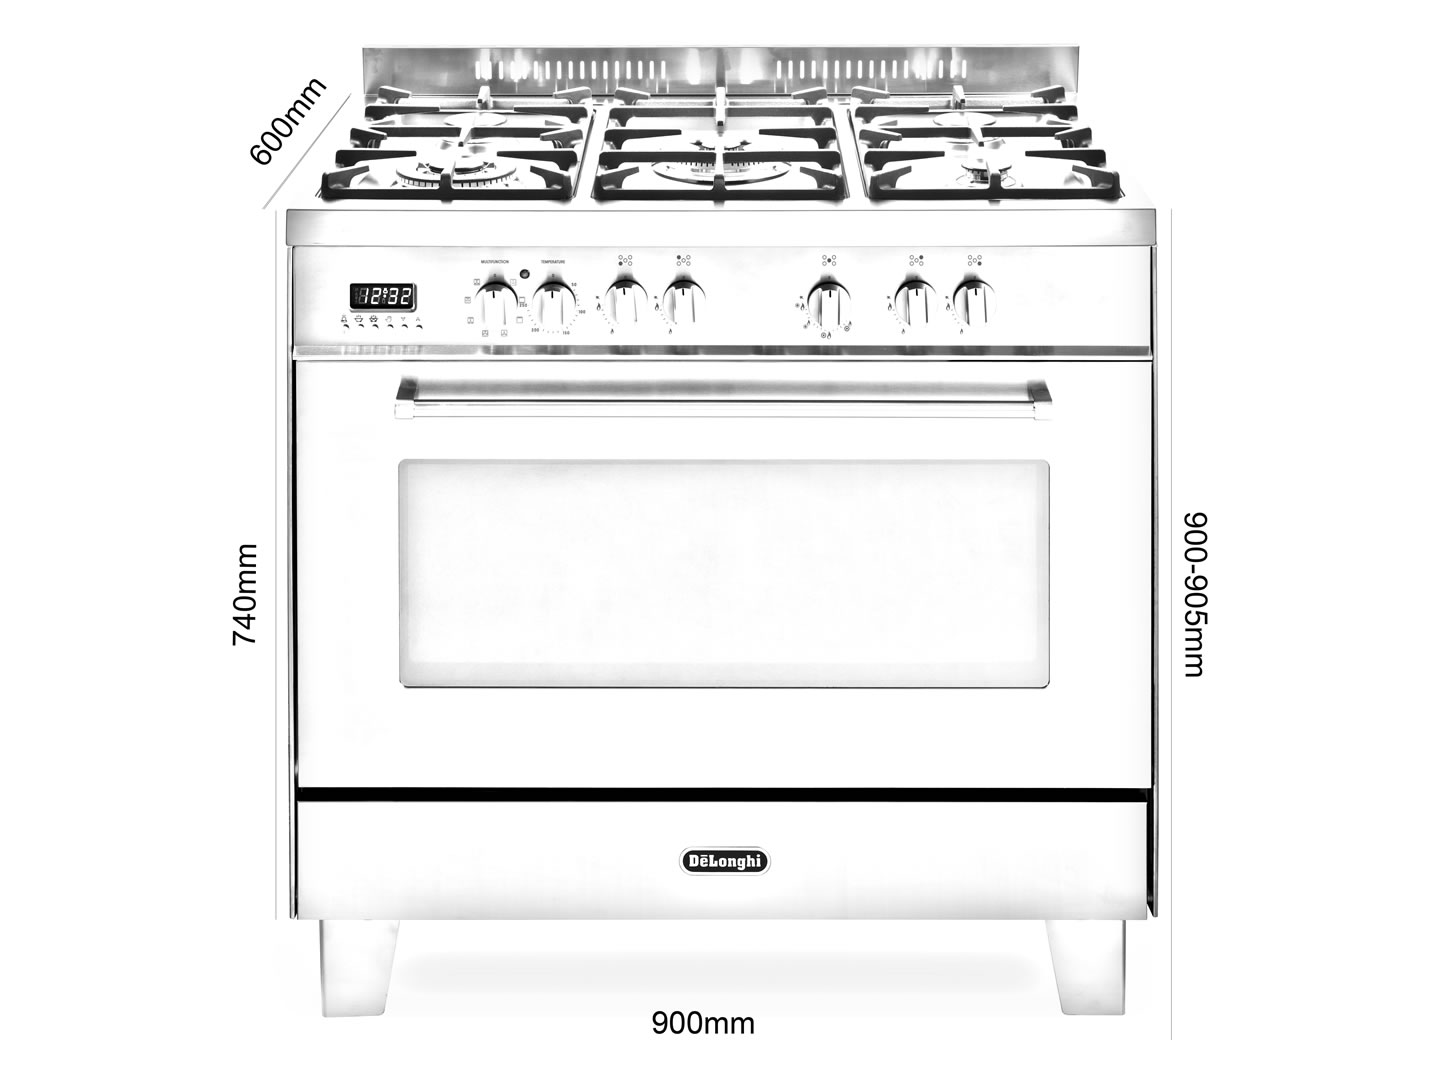 Freestanding 90cm Stainless Steel Dual Fuel Cooker - DEFP907S - Installation Diagram